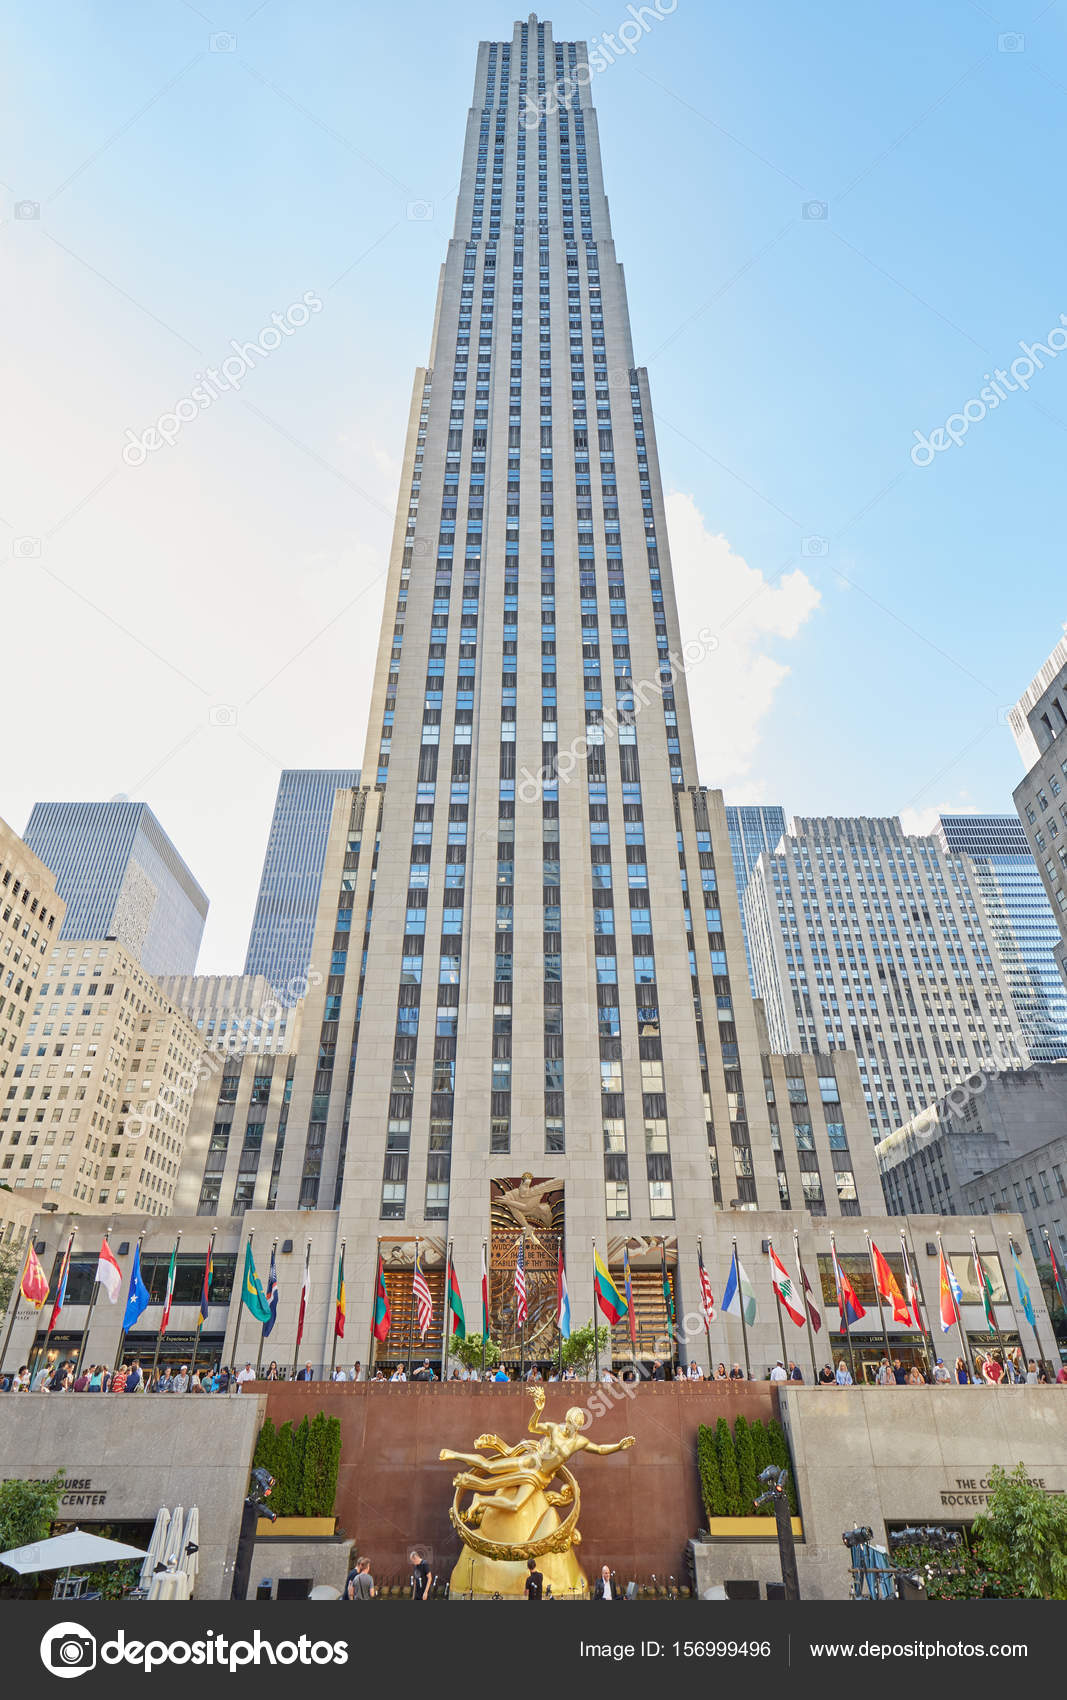 rockefeller center geb ude an einem sonnigen tag blauer himmel in new york redaktionelles. Black Bedroom Furniture Sets. Home Design Ideas